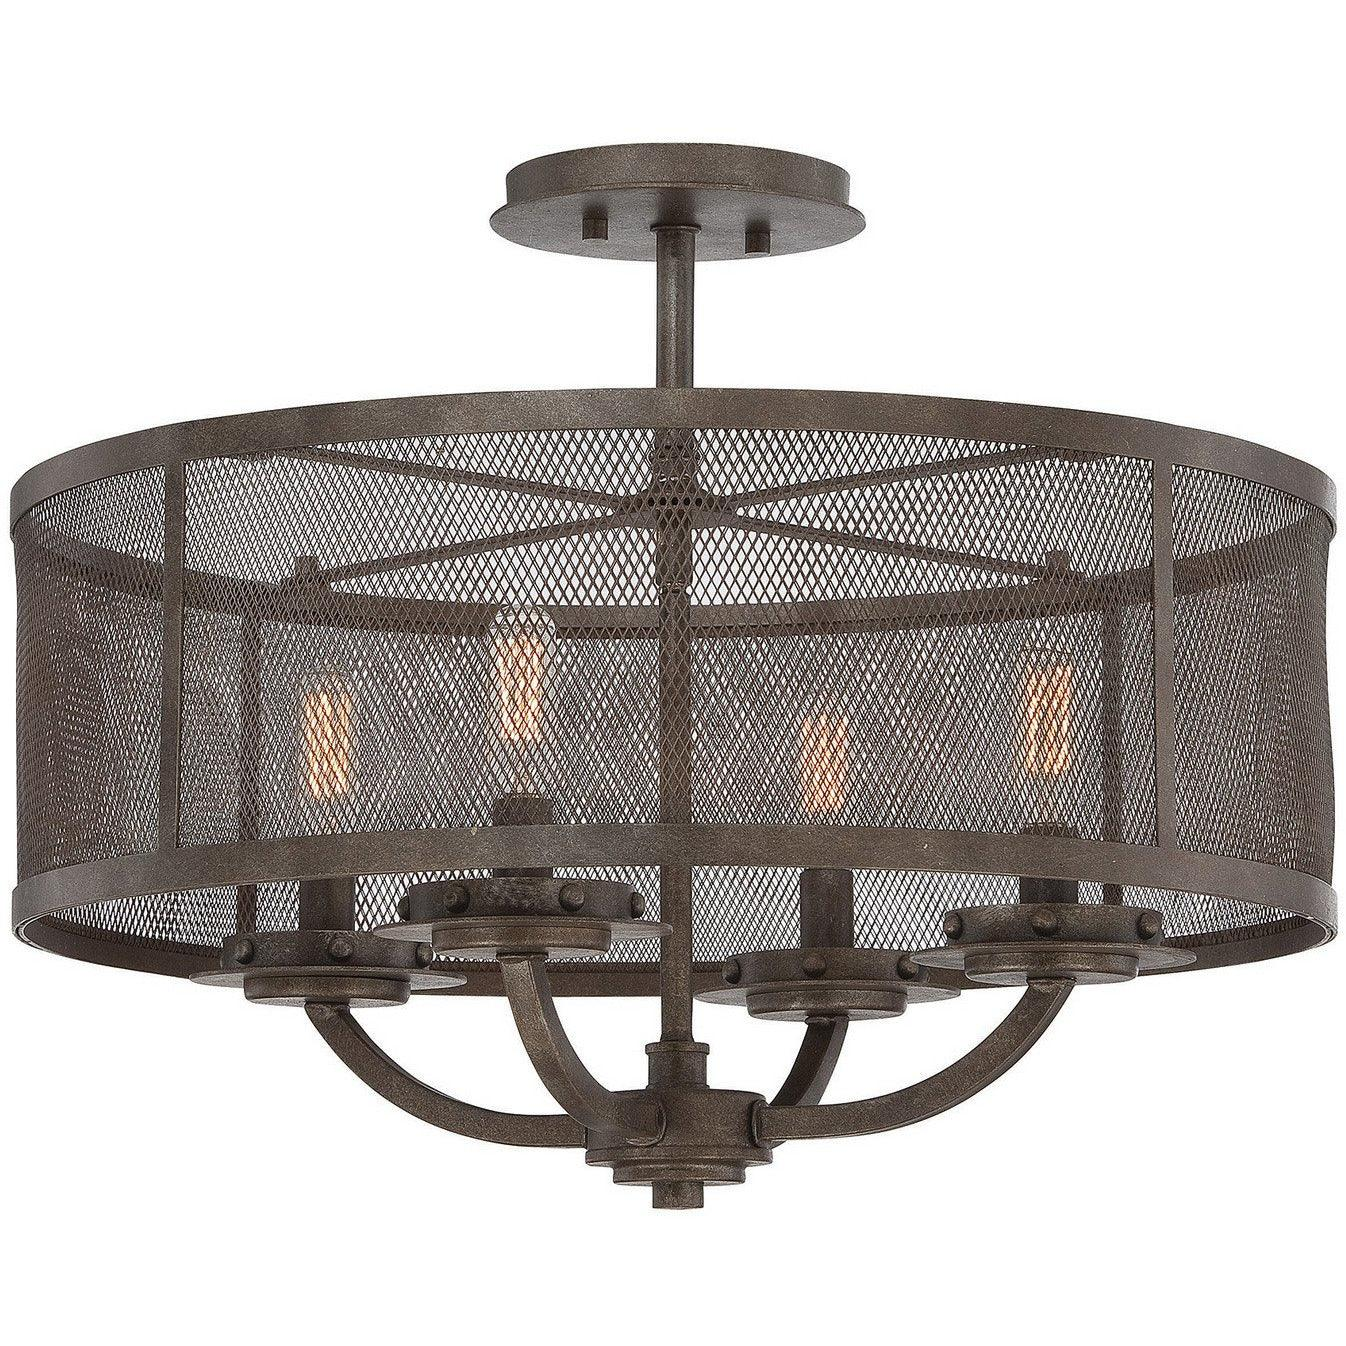 Savoy House - 6-2504-4-42 - Four Light Semi-Flush Mount - Nouvel - Galaxy Bronze